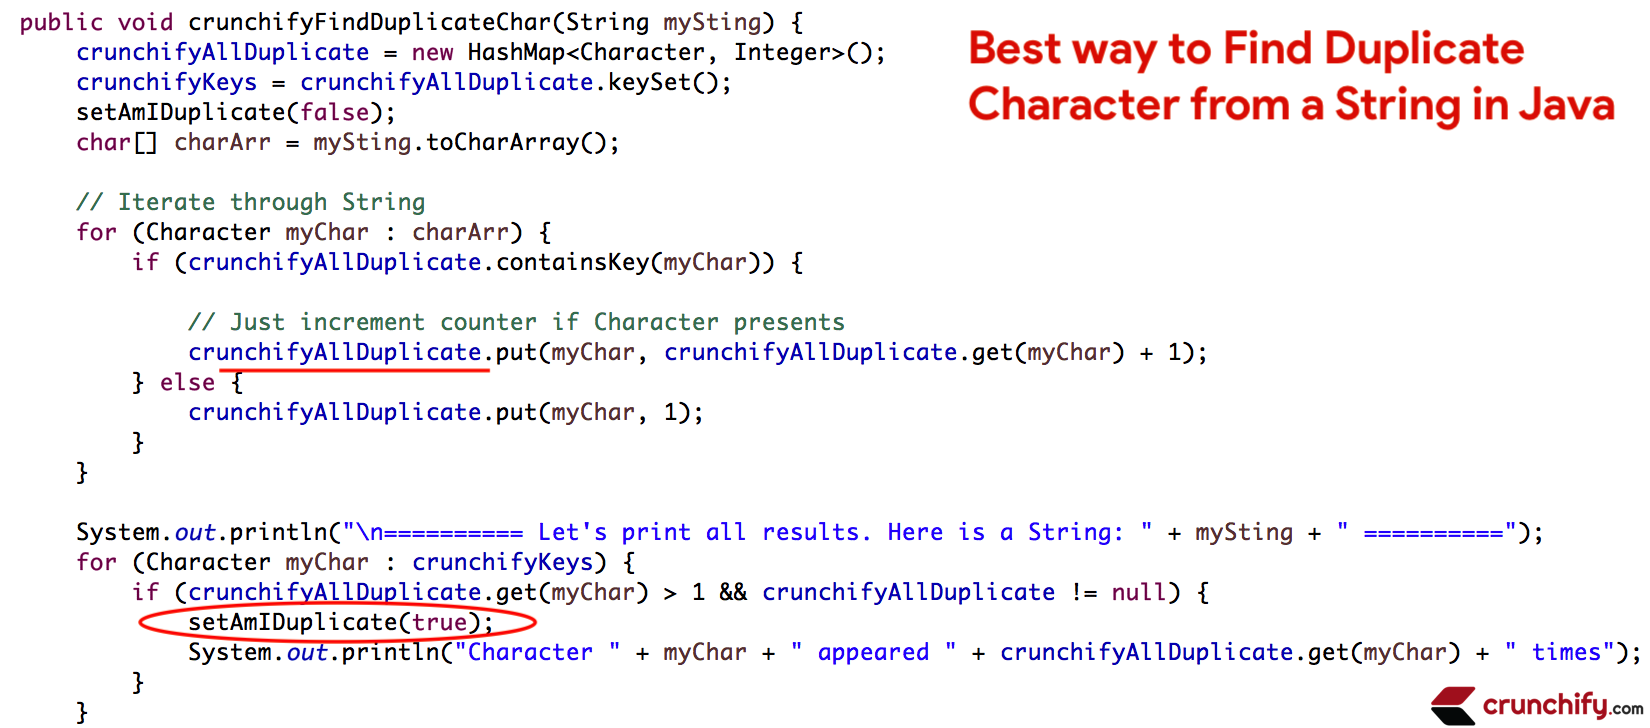 Best way to Find Duplicate Character from a String in Java by Crunchify